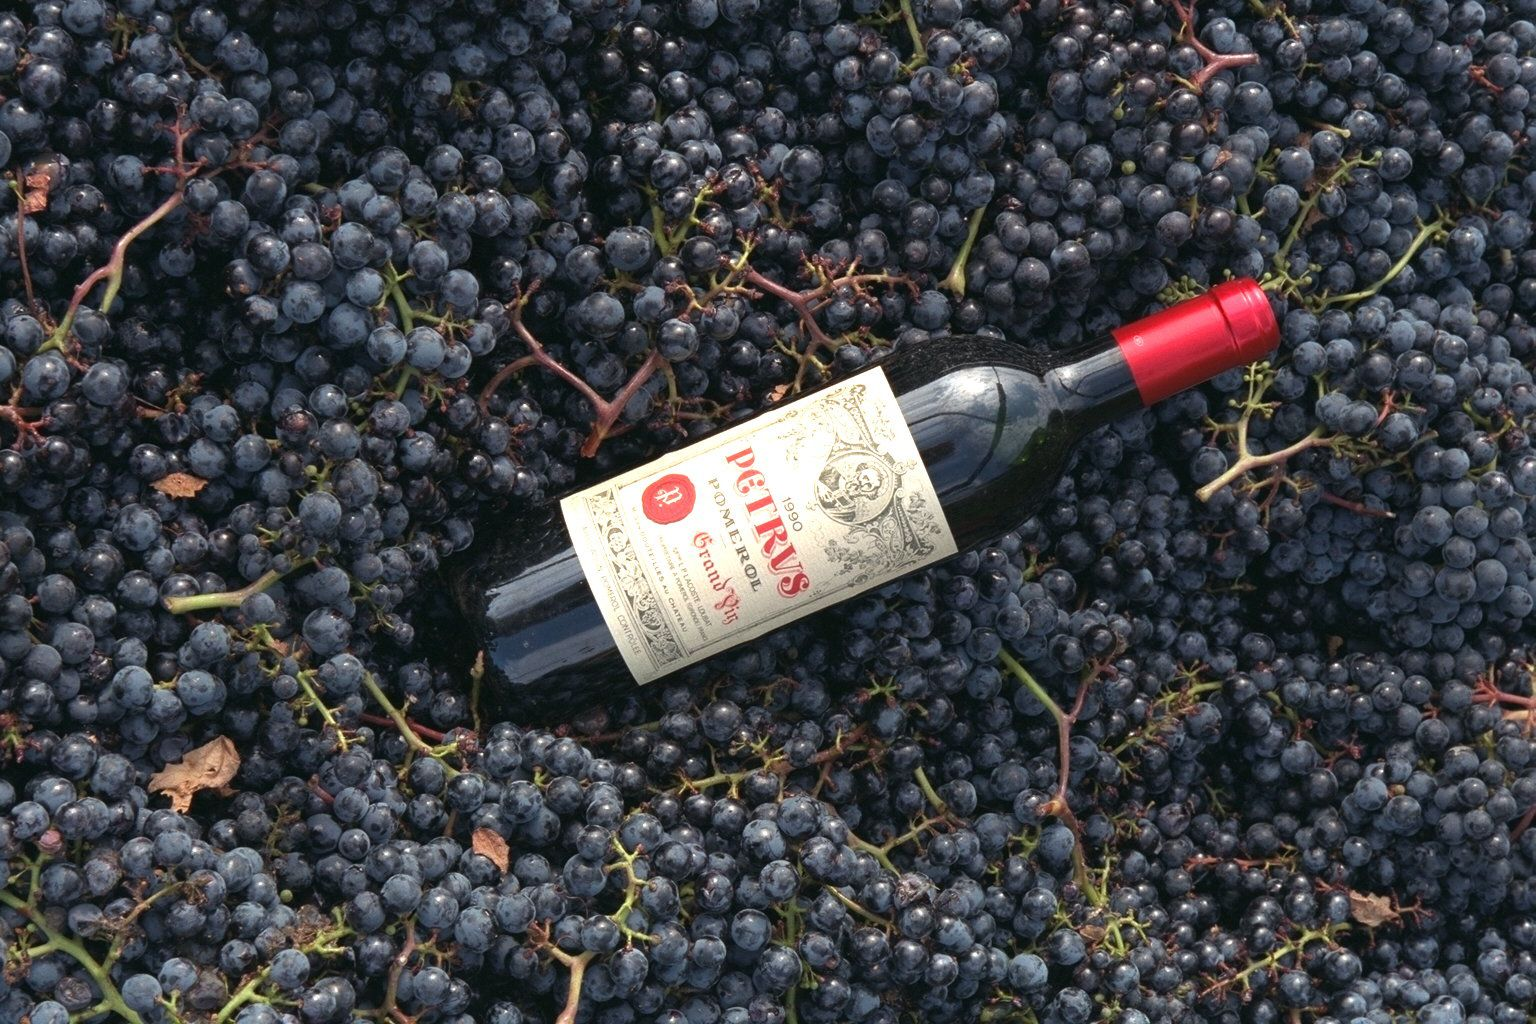 GRAPE PICKING AT CHATEAU PETRUS IN POMEROL